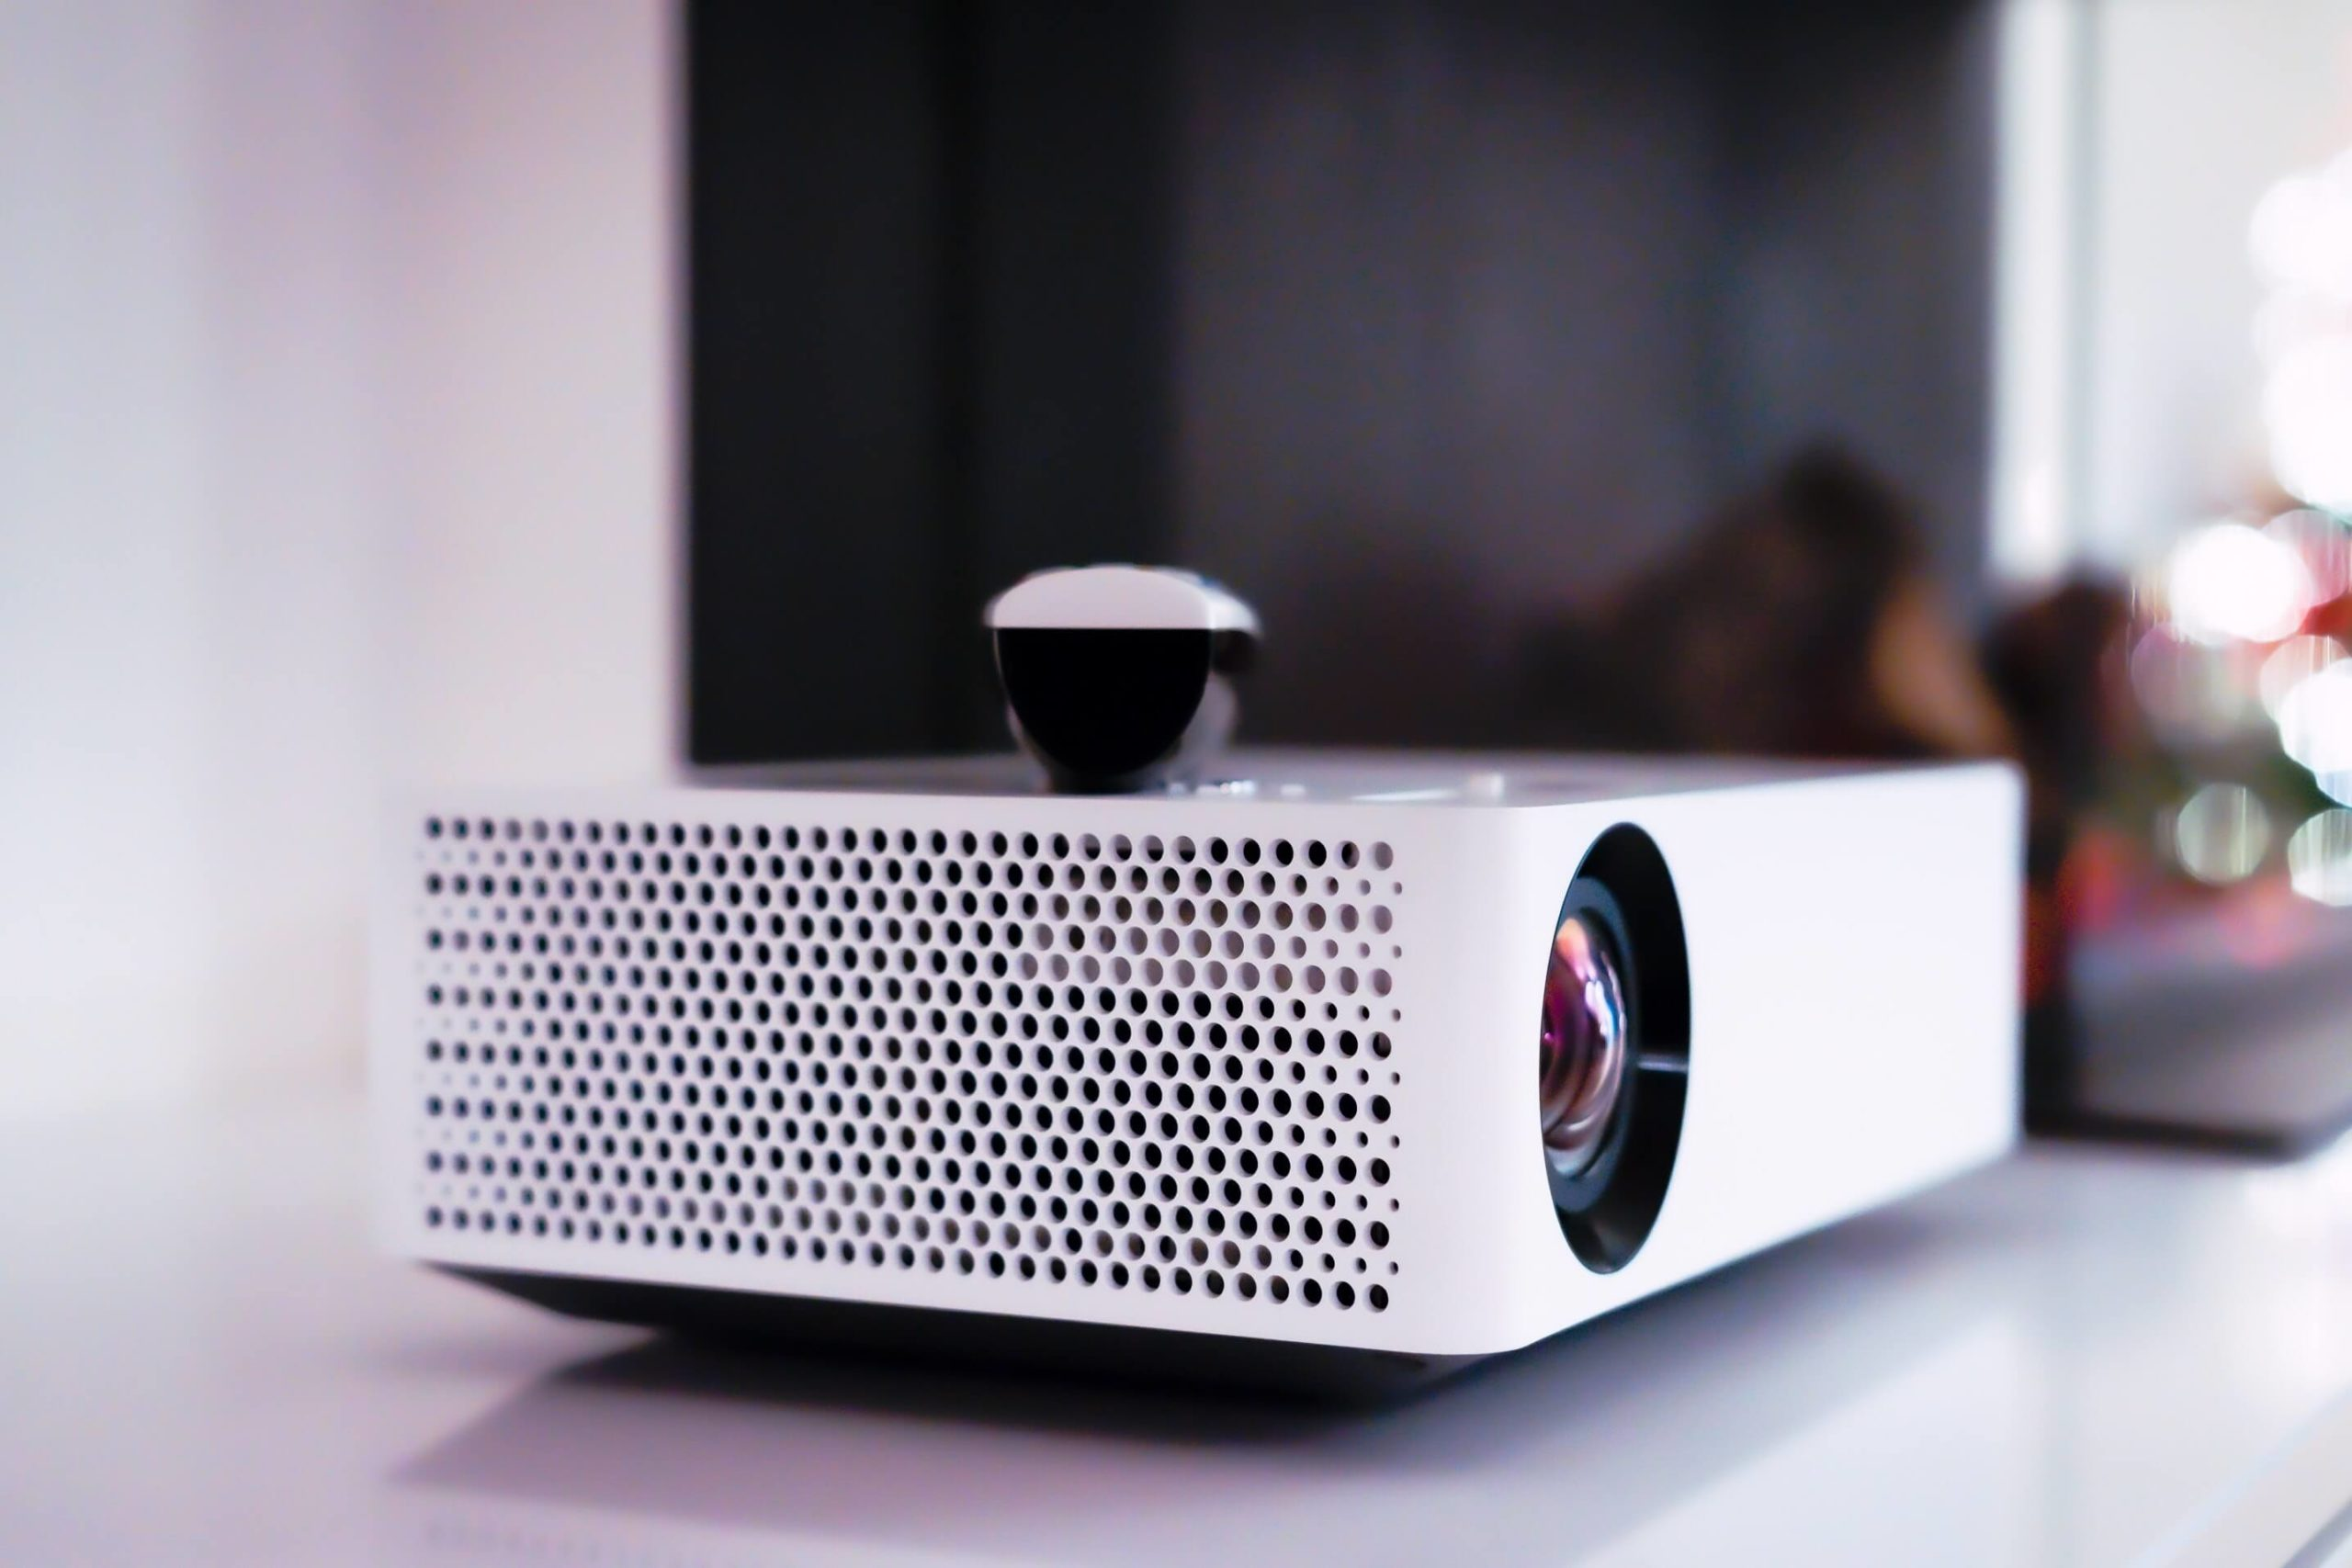 What should you consider while getting a home theater projector